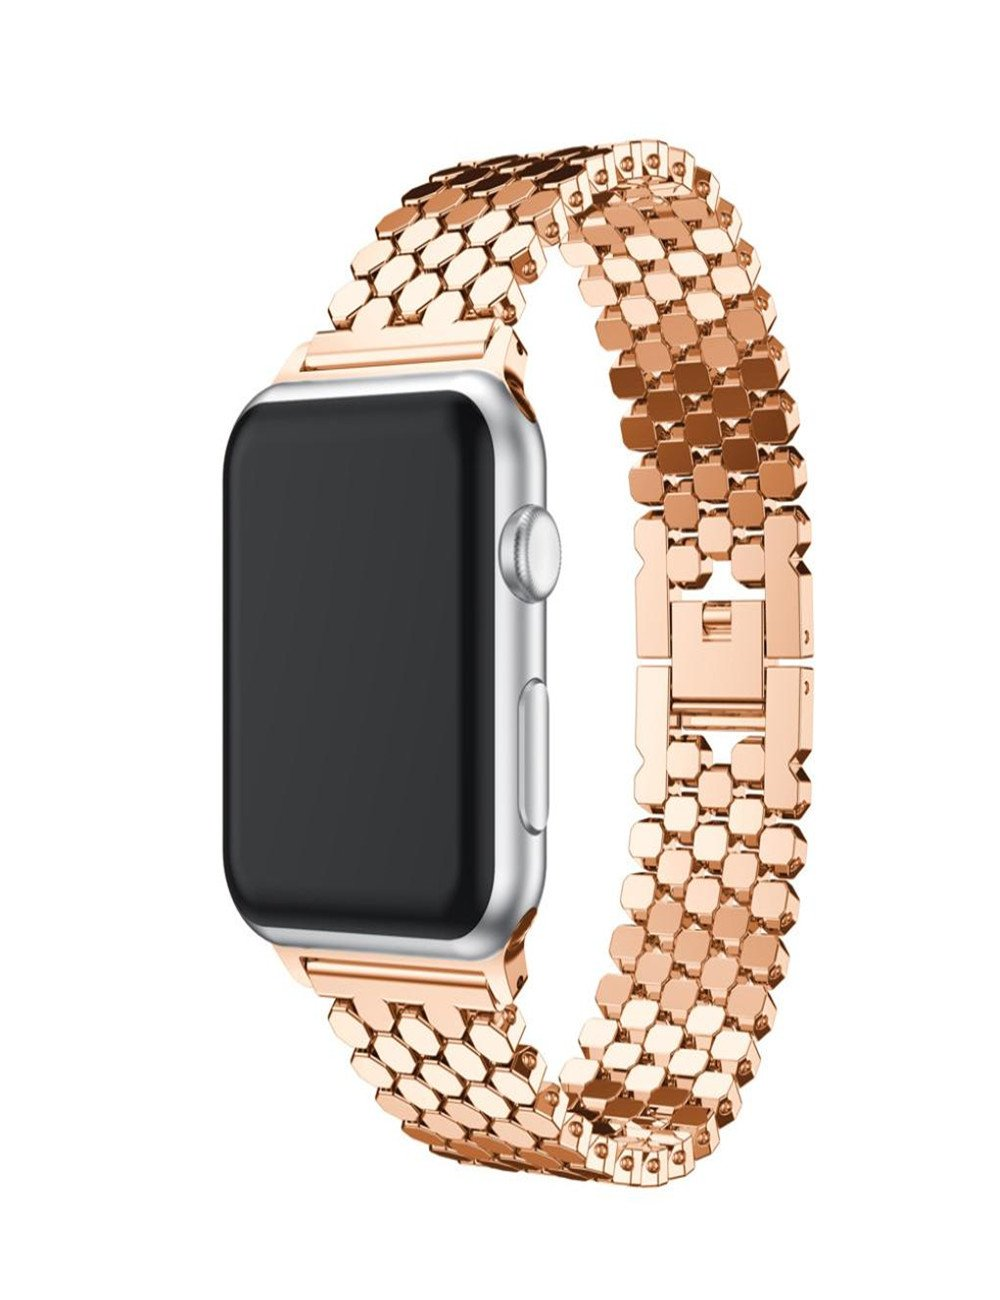 Dreaman Elegant Stainless Steel Watch Band Replacement Strap for iwatch Watch 38MM (Rose gold)